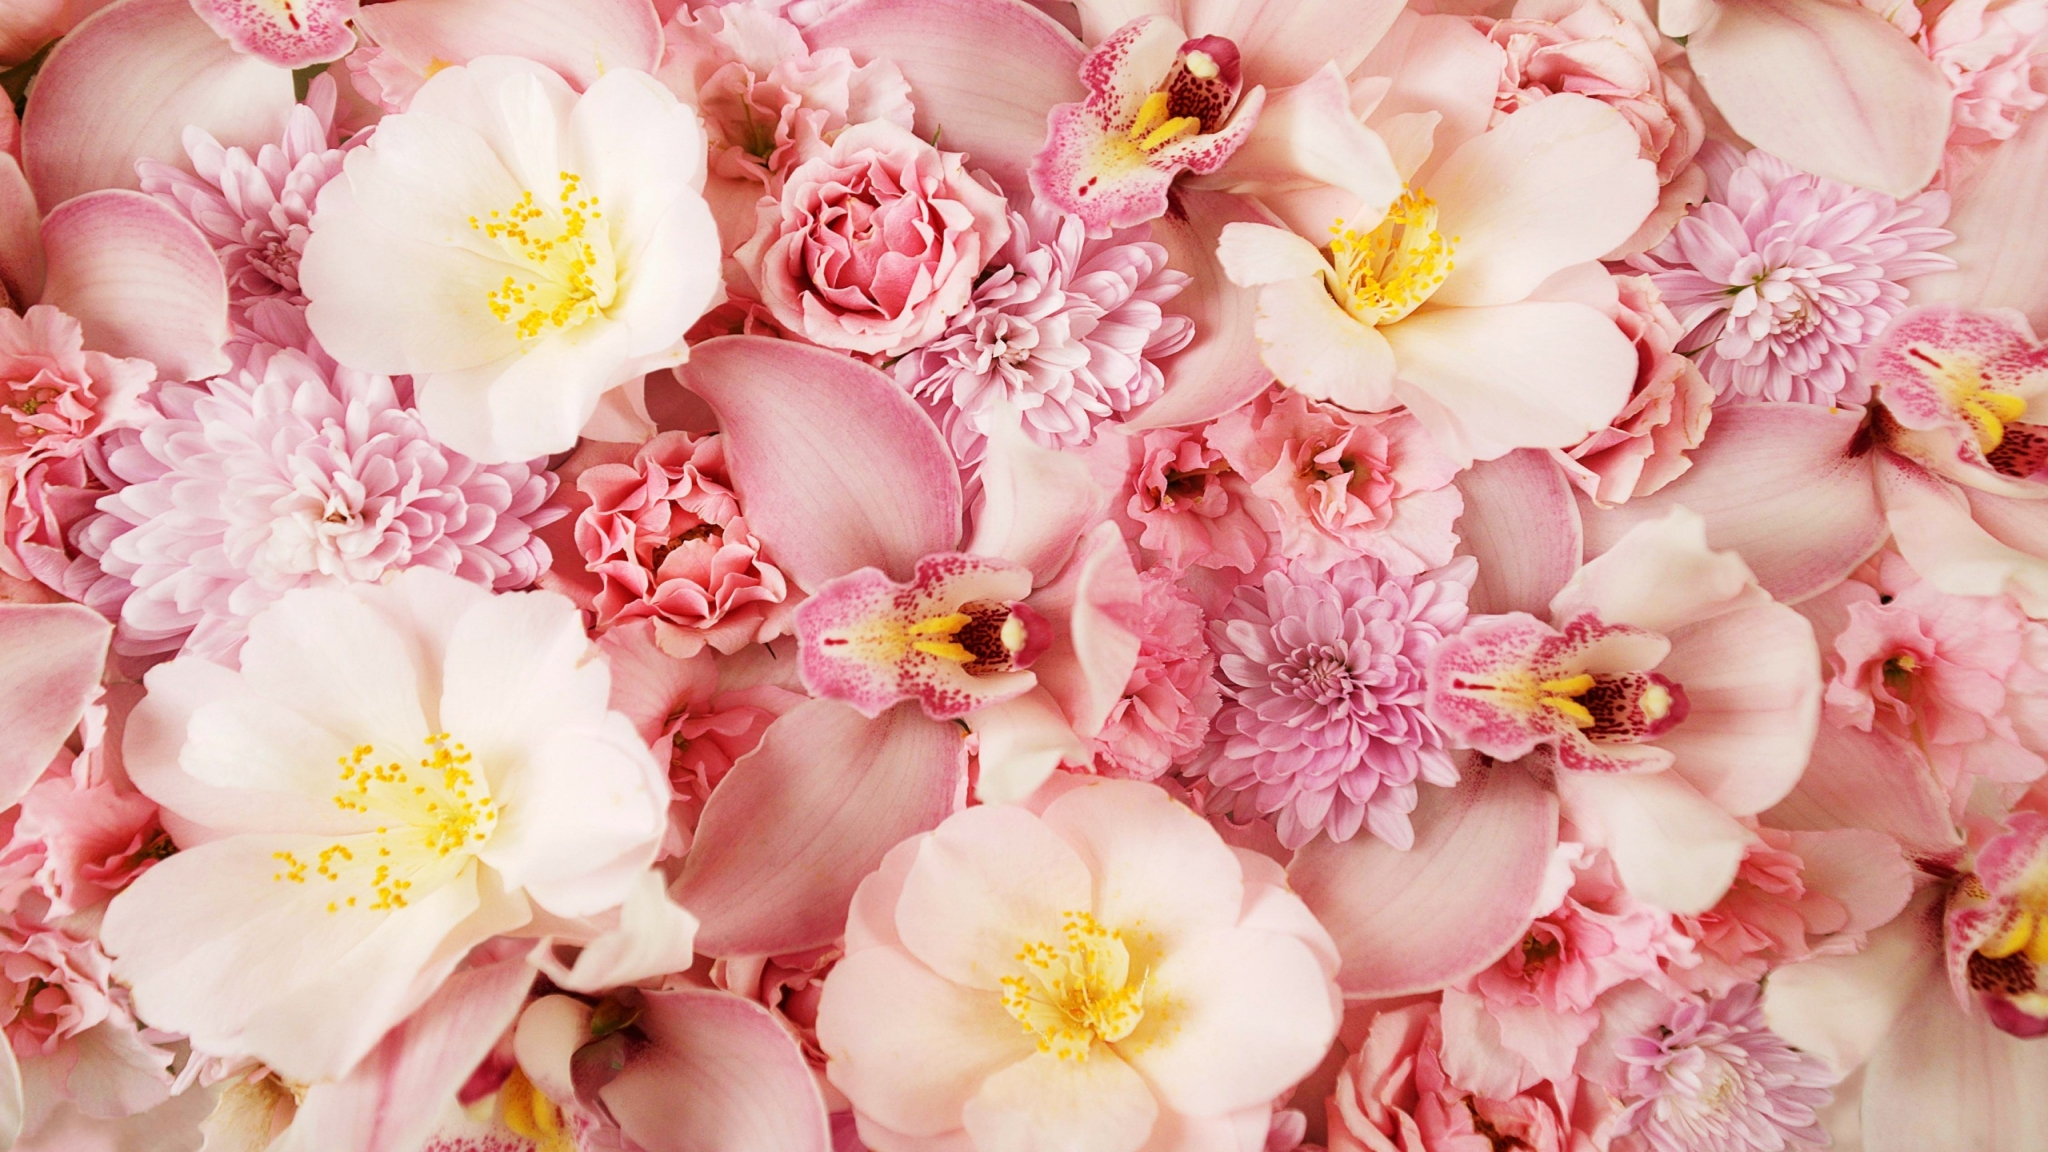 Flowers Wallpapers Pink Orchids 1058 2560x1600 pixel Exotic 2048x1152